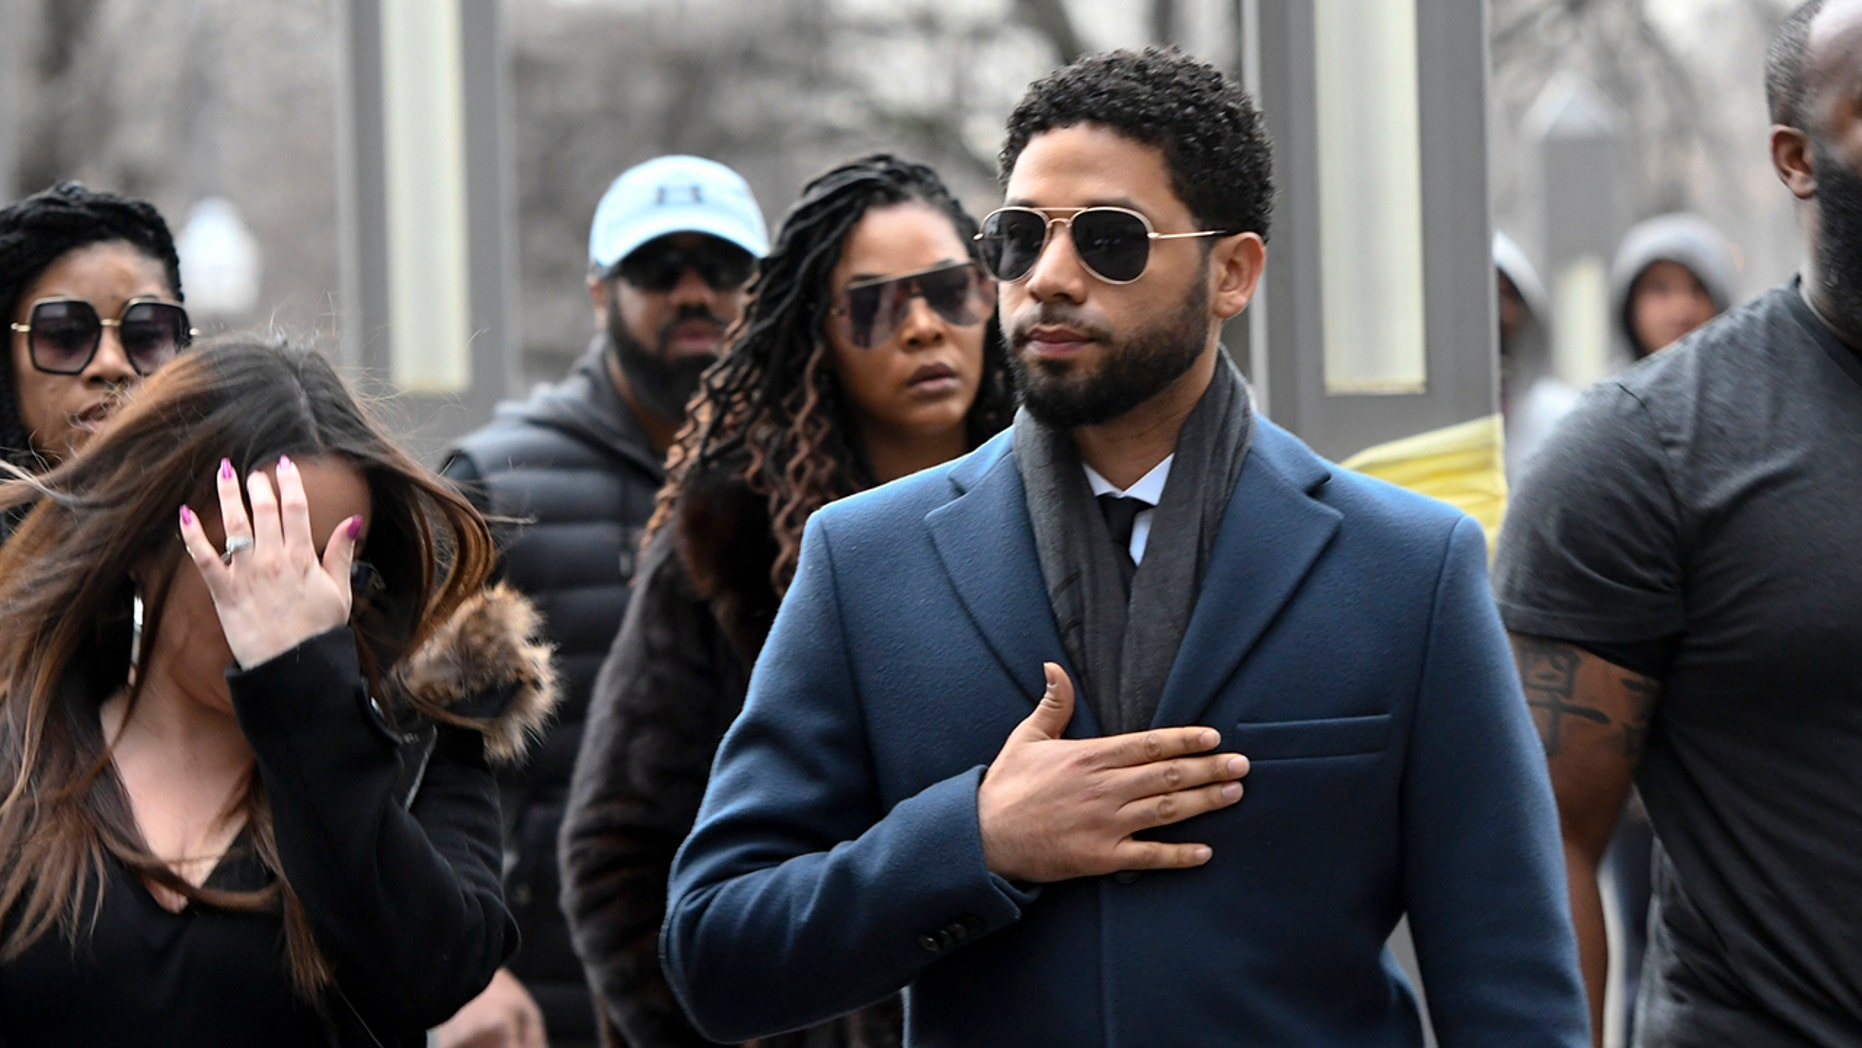 City demands $130K from Jussie Smollett for investigation costs